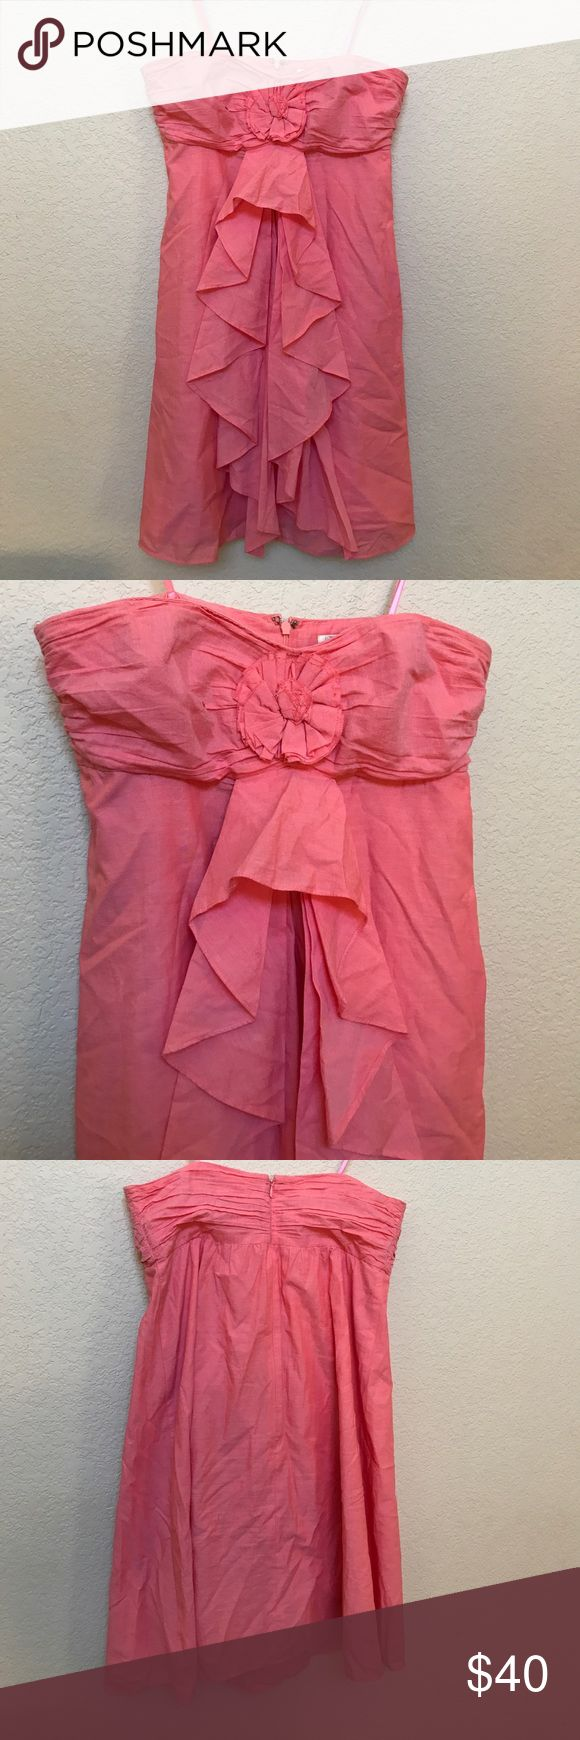 JCrew strapless dress Very cute strapless dress. Color is like a peach/salmon colored pink. Bra straps inside to add support. 100% cotton. Worn only a handful of times. Excellent used condition. JCrew Dresses